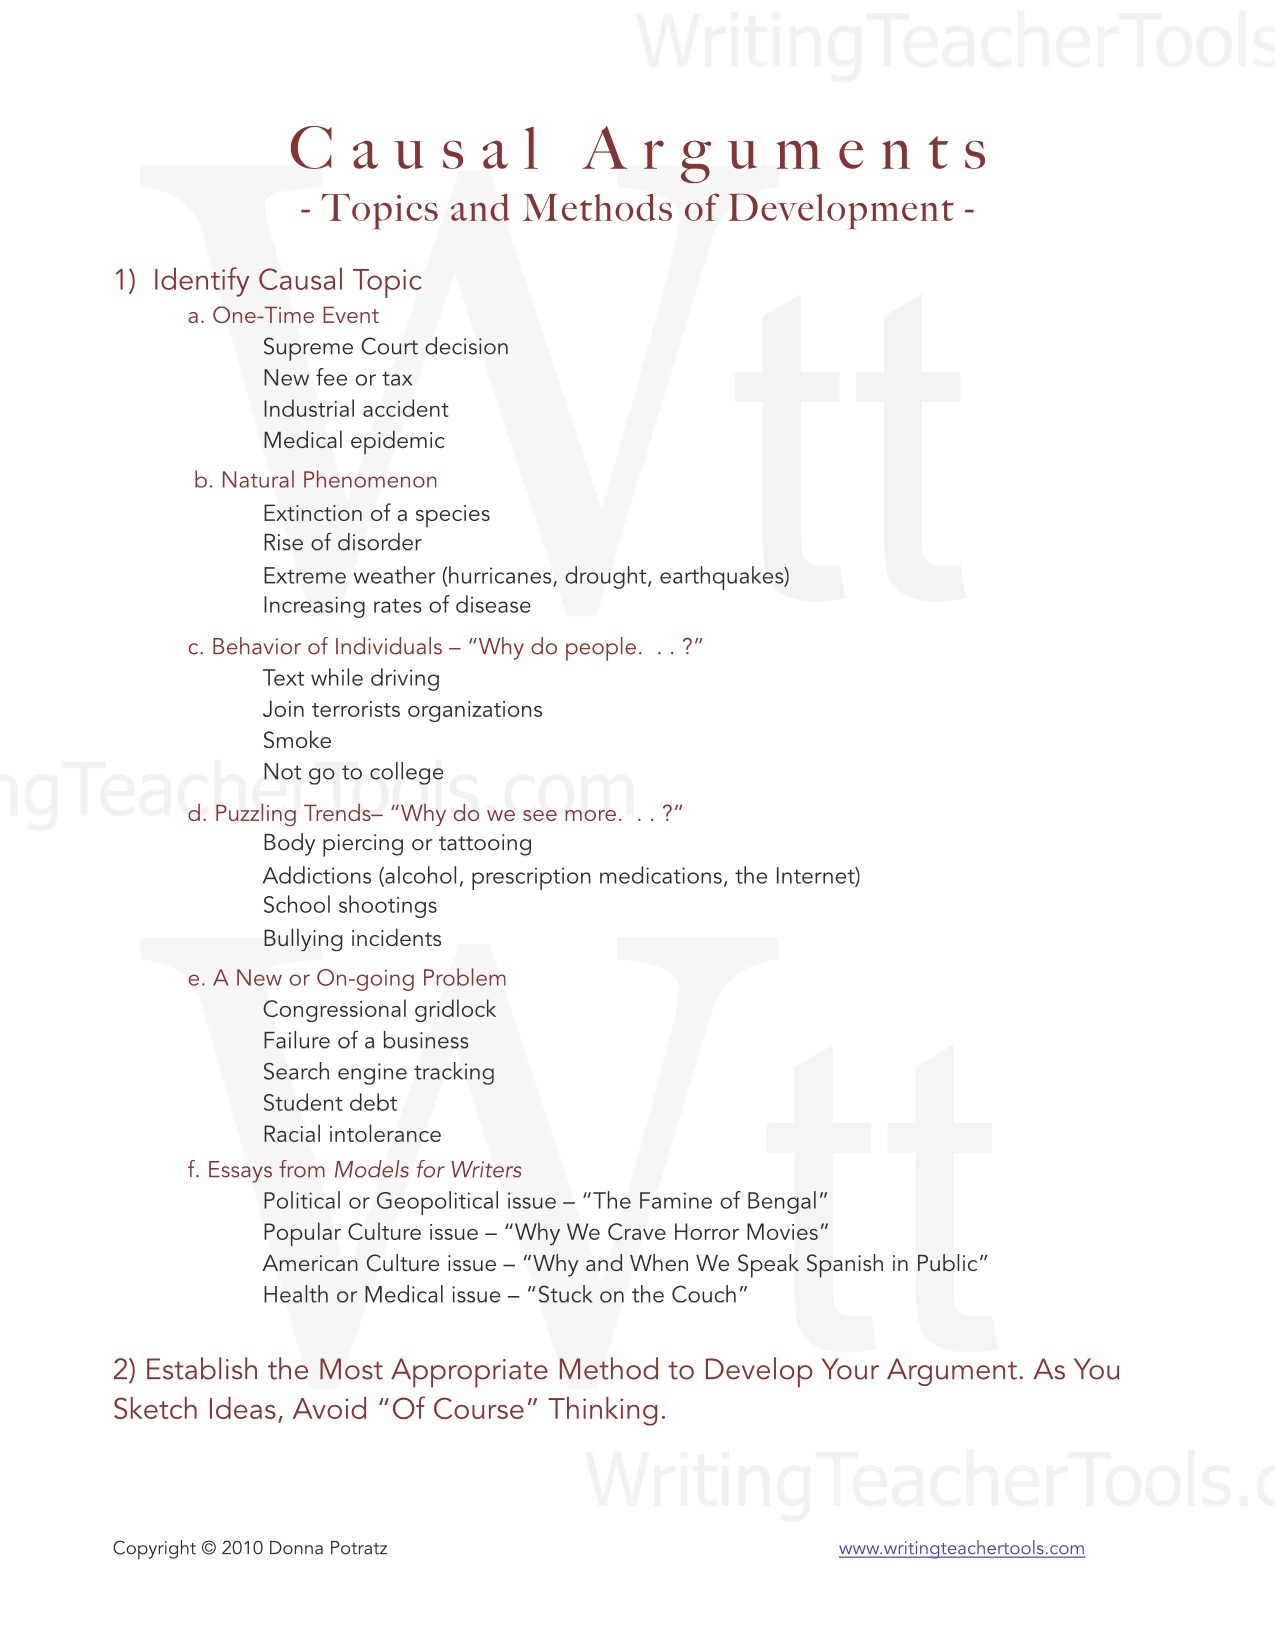 005 Essay Example Evaluative Causal Topics For Argument And Methods Of Develo Evaluation Marvelous Debate Interesting Persuasive Questions Full